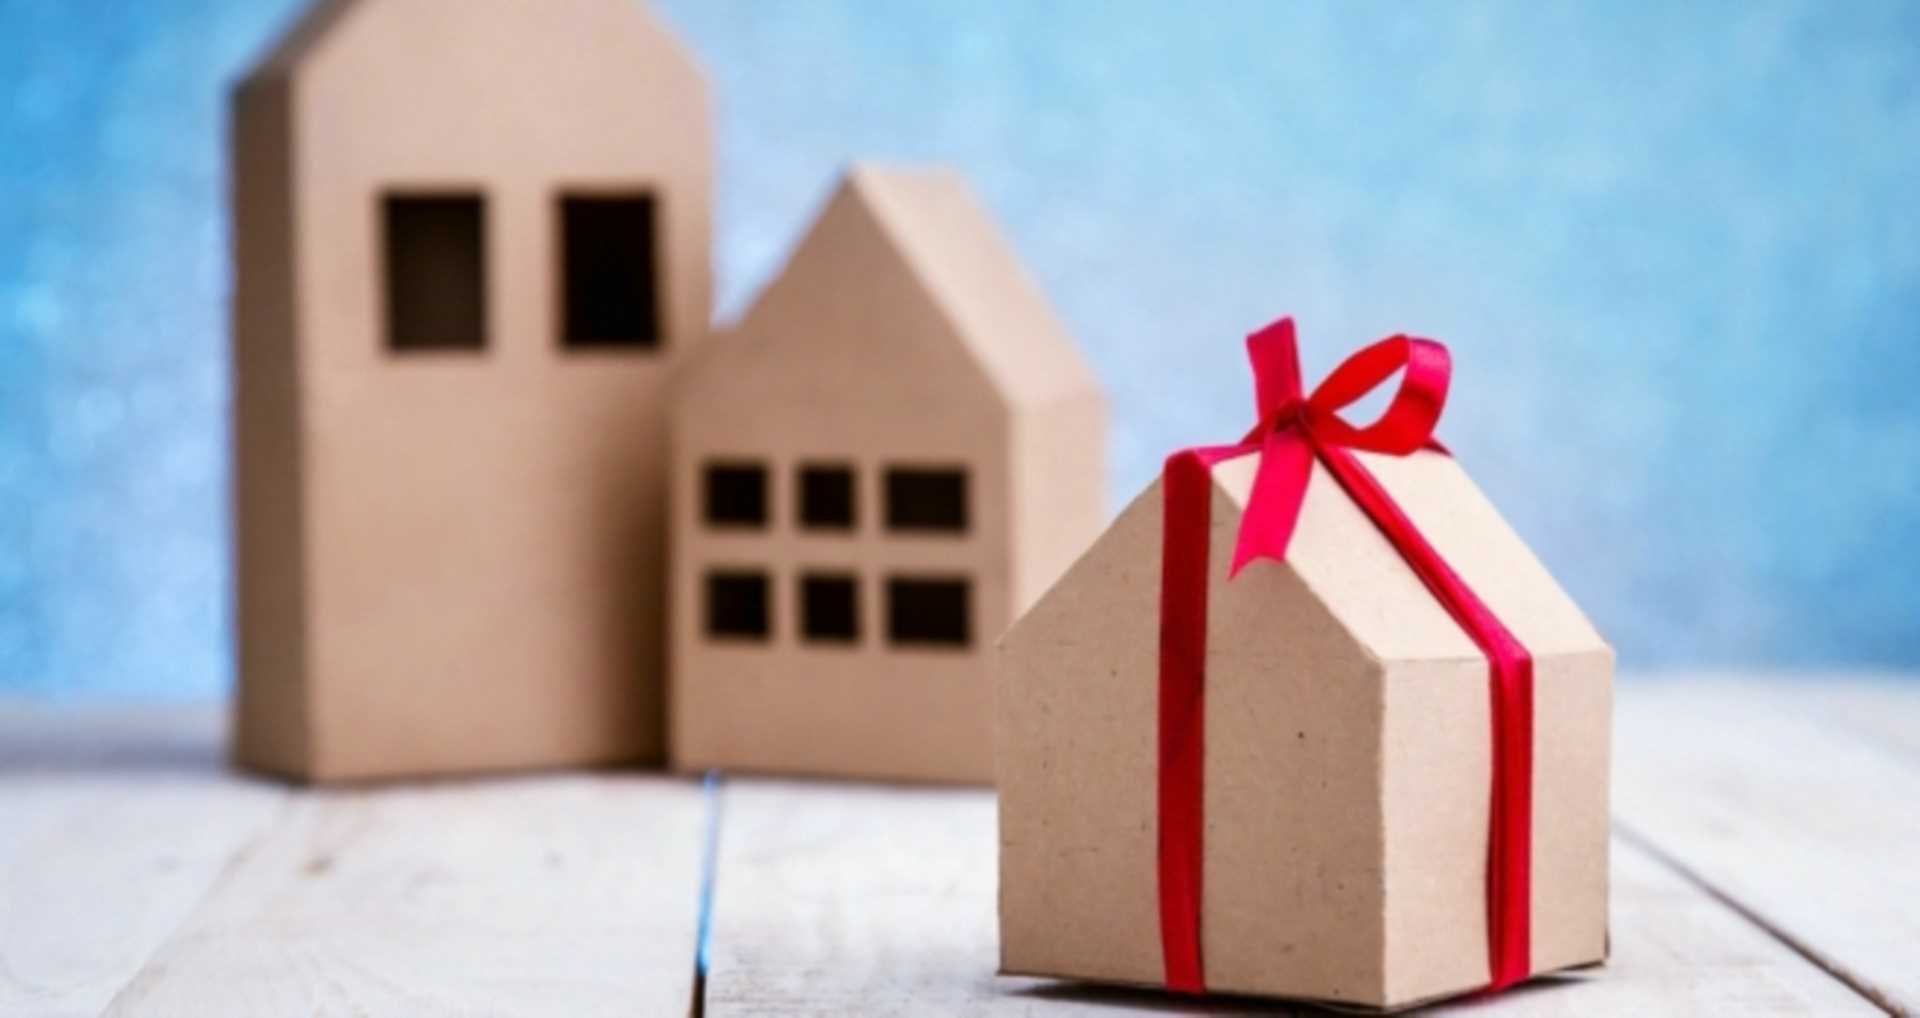 Want to move before Christmas?